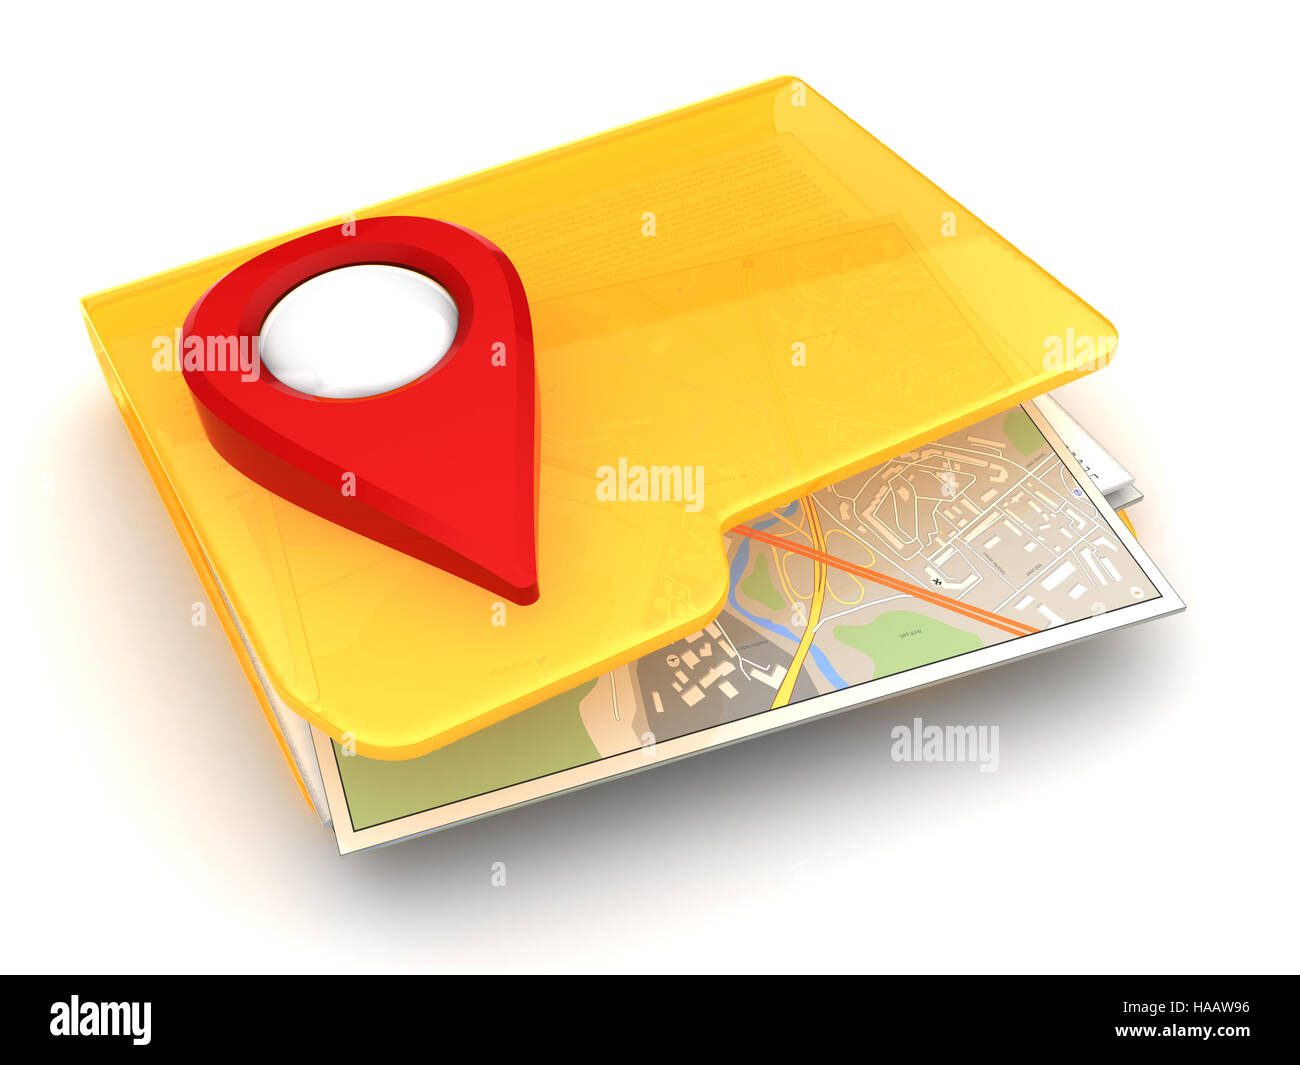 3d illustration of folder icon with maps and navigation symbol - Stock Image